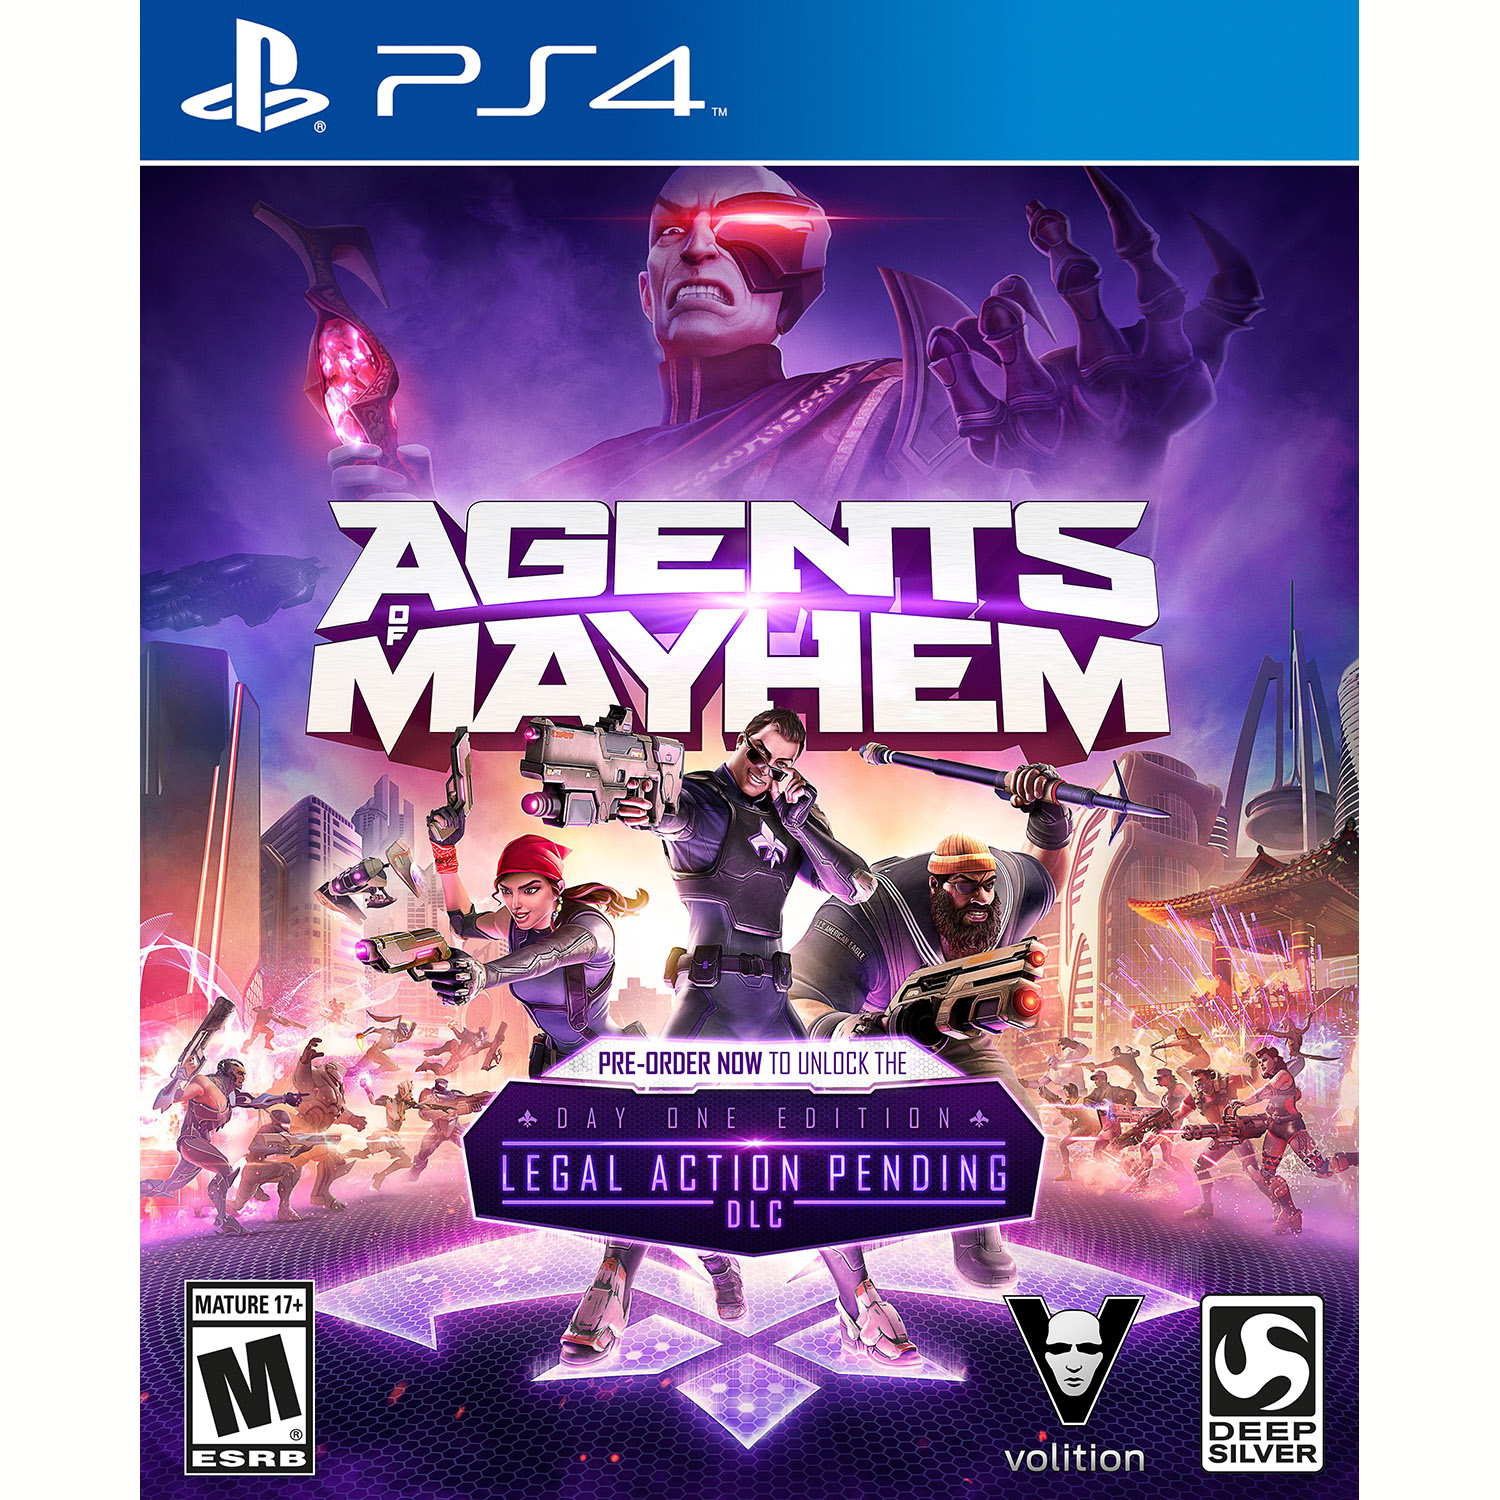 Agents of Mayhem - Launch Edition for PlayStation 4 Deep Silver